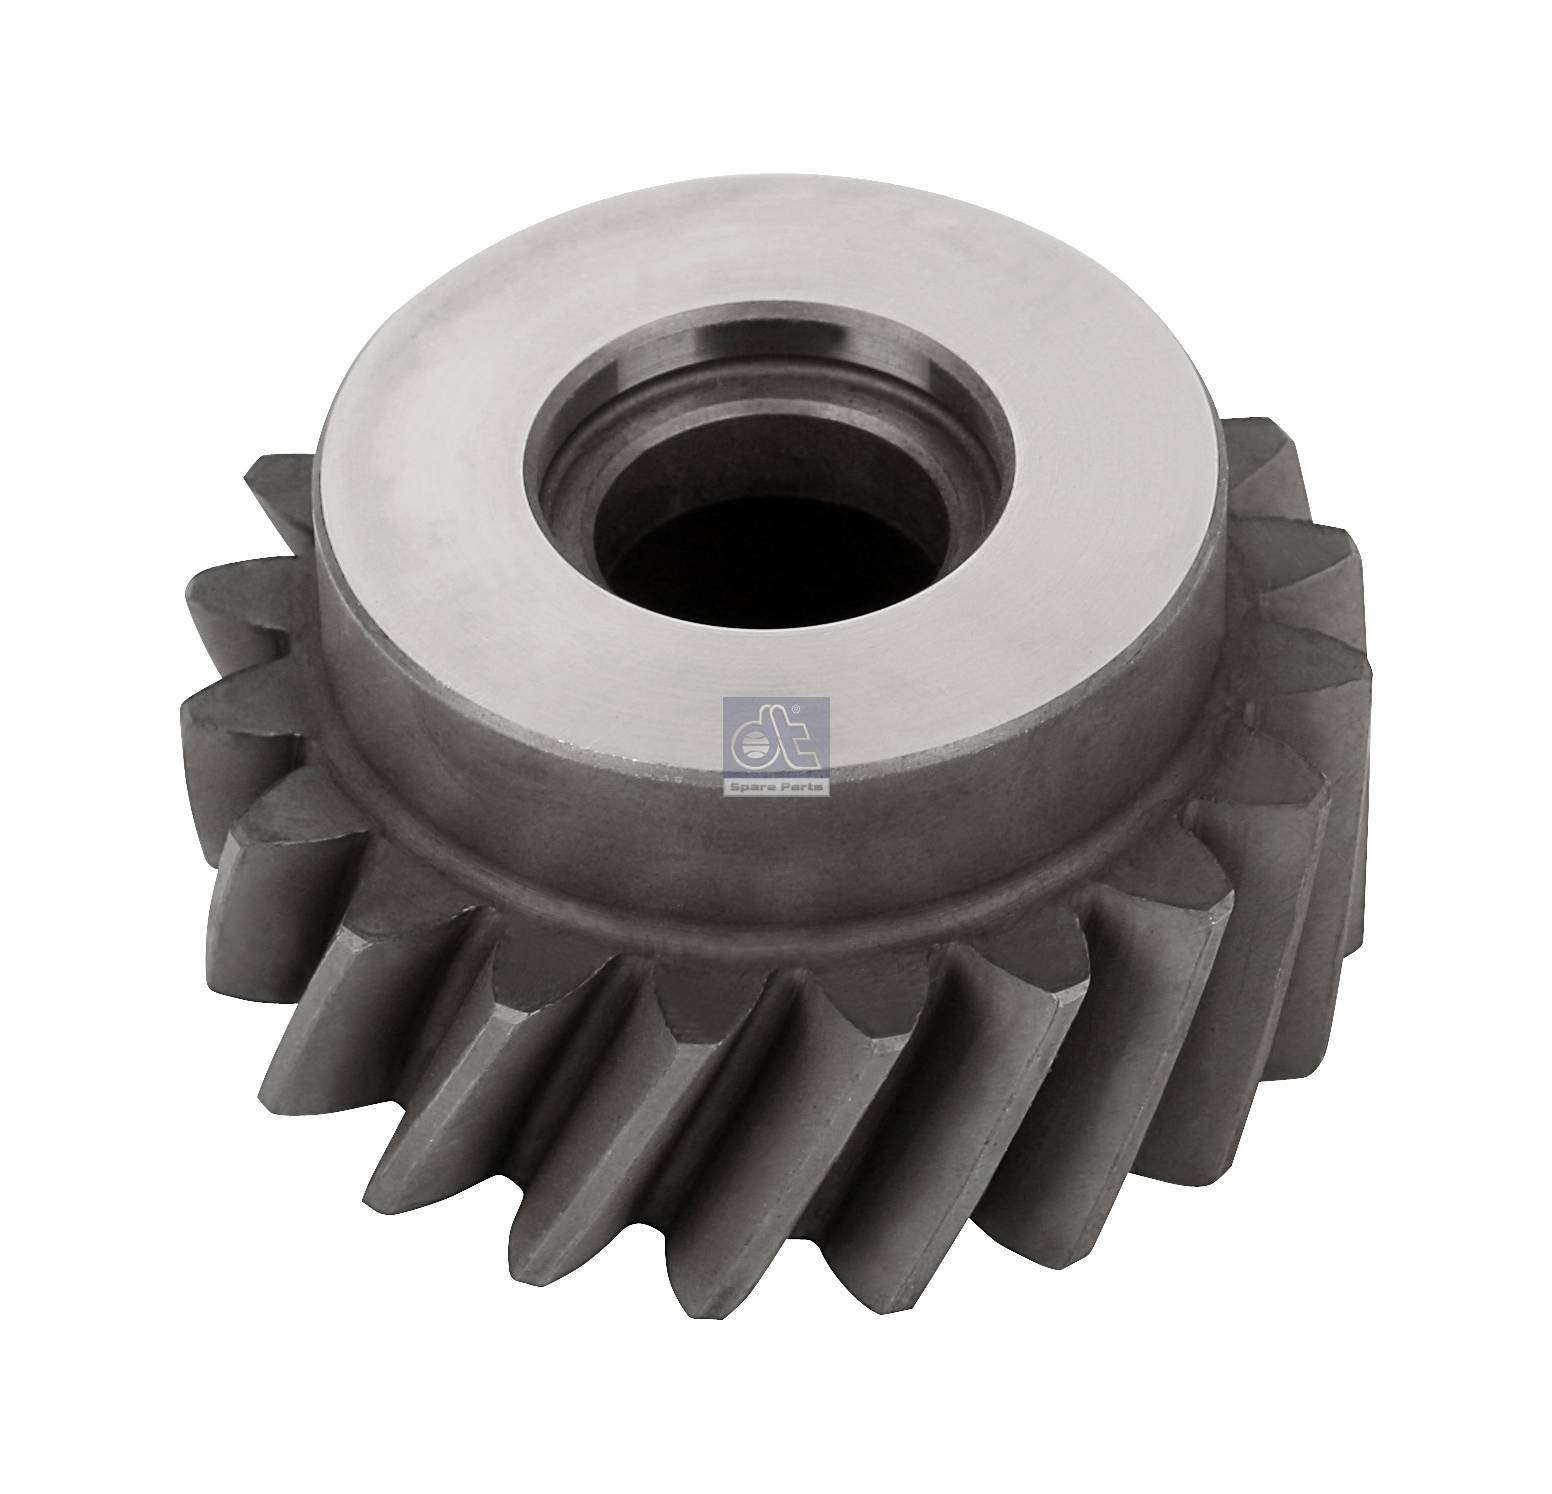 Drive gear, crankshaft, compressor